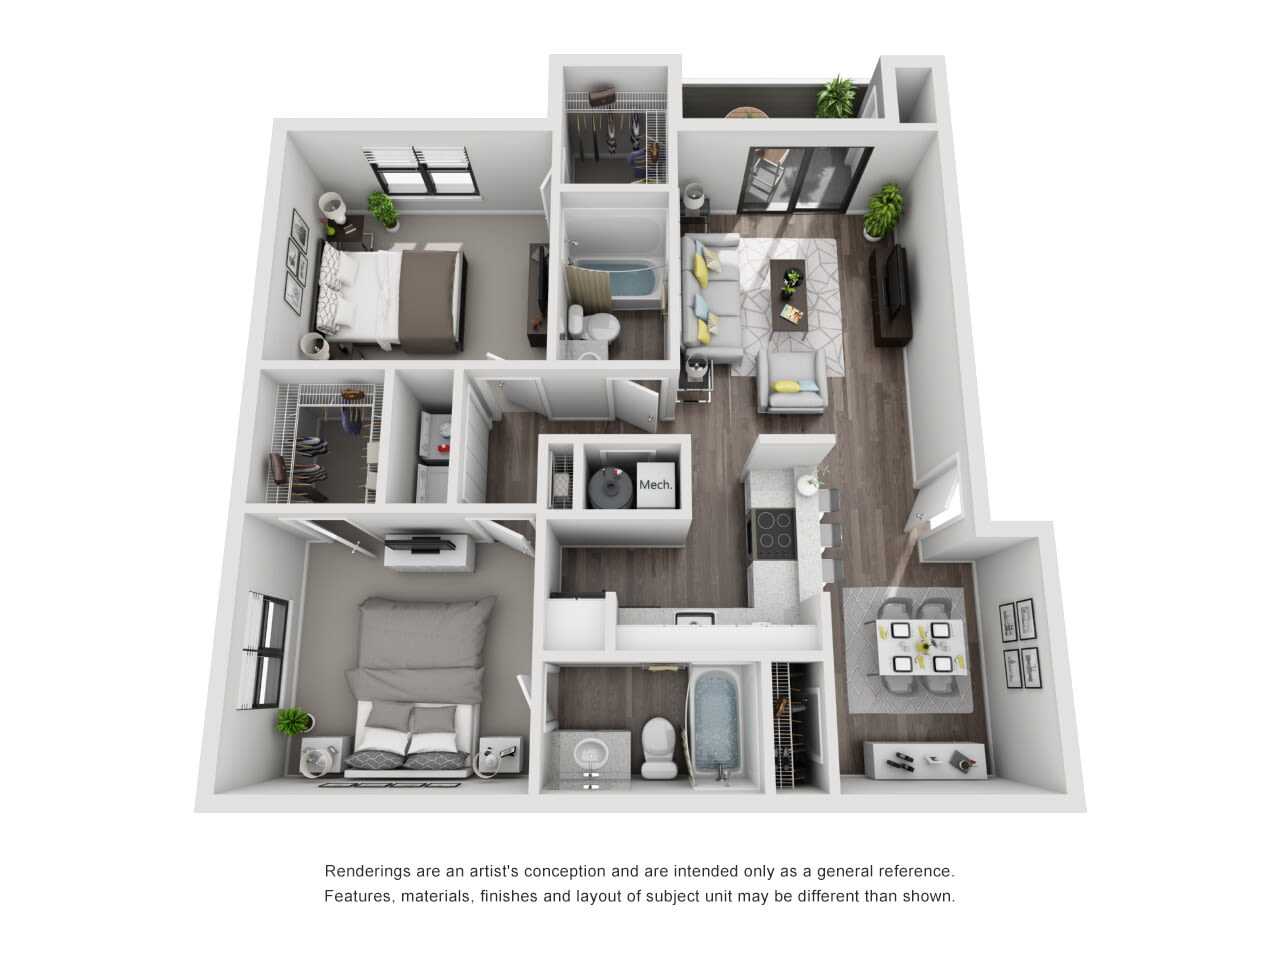 B1 2 bed 2 bath at The Alcove